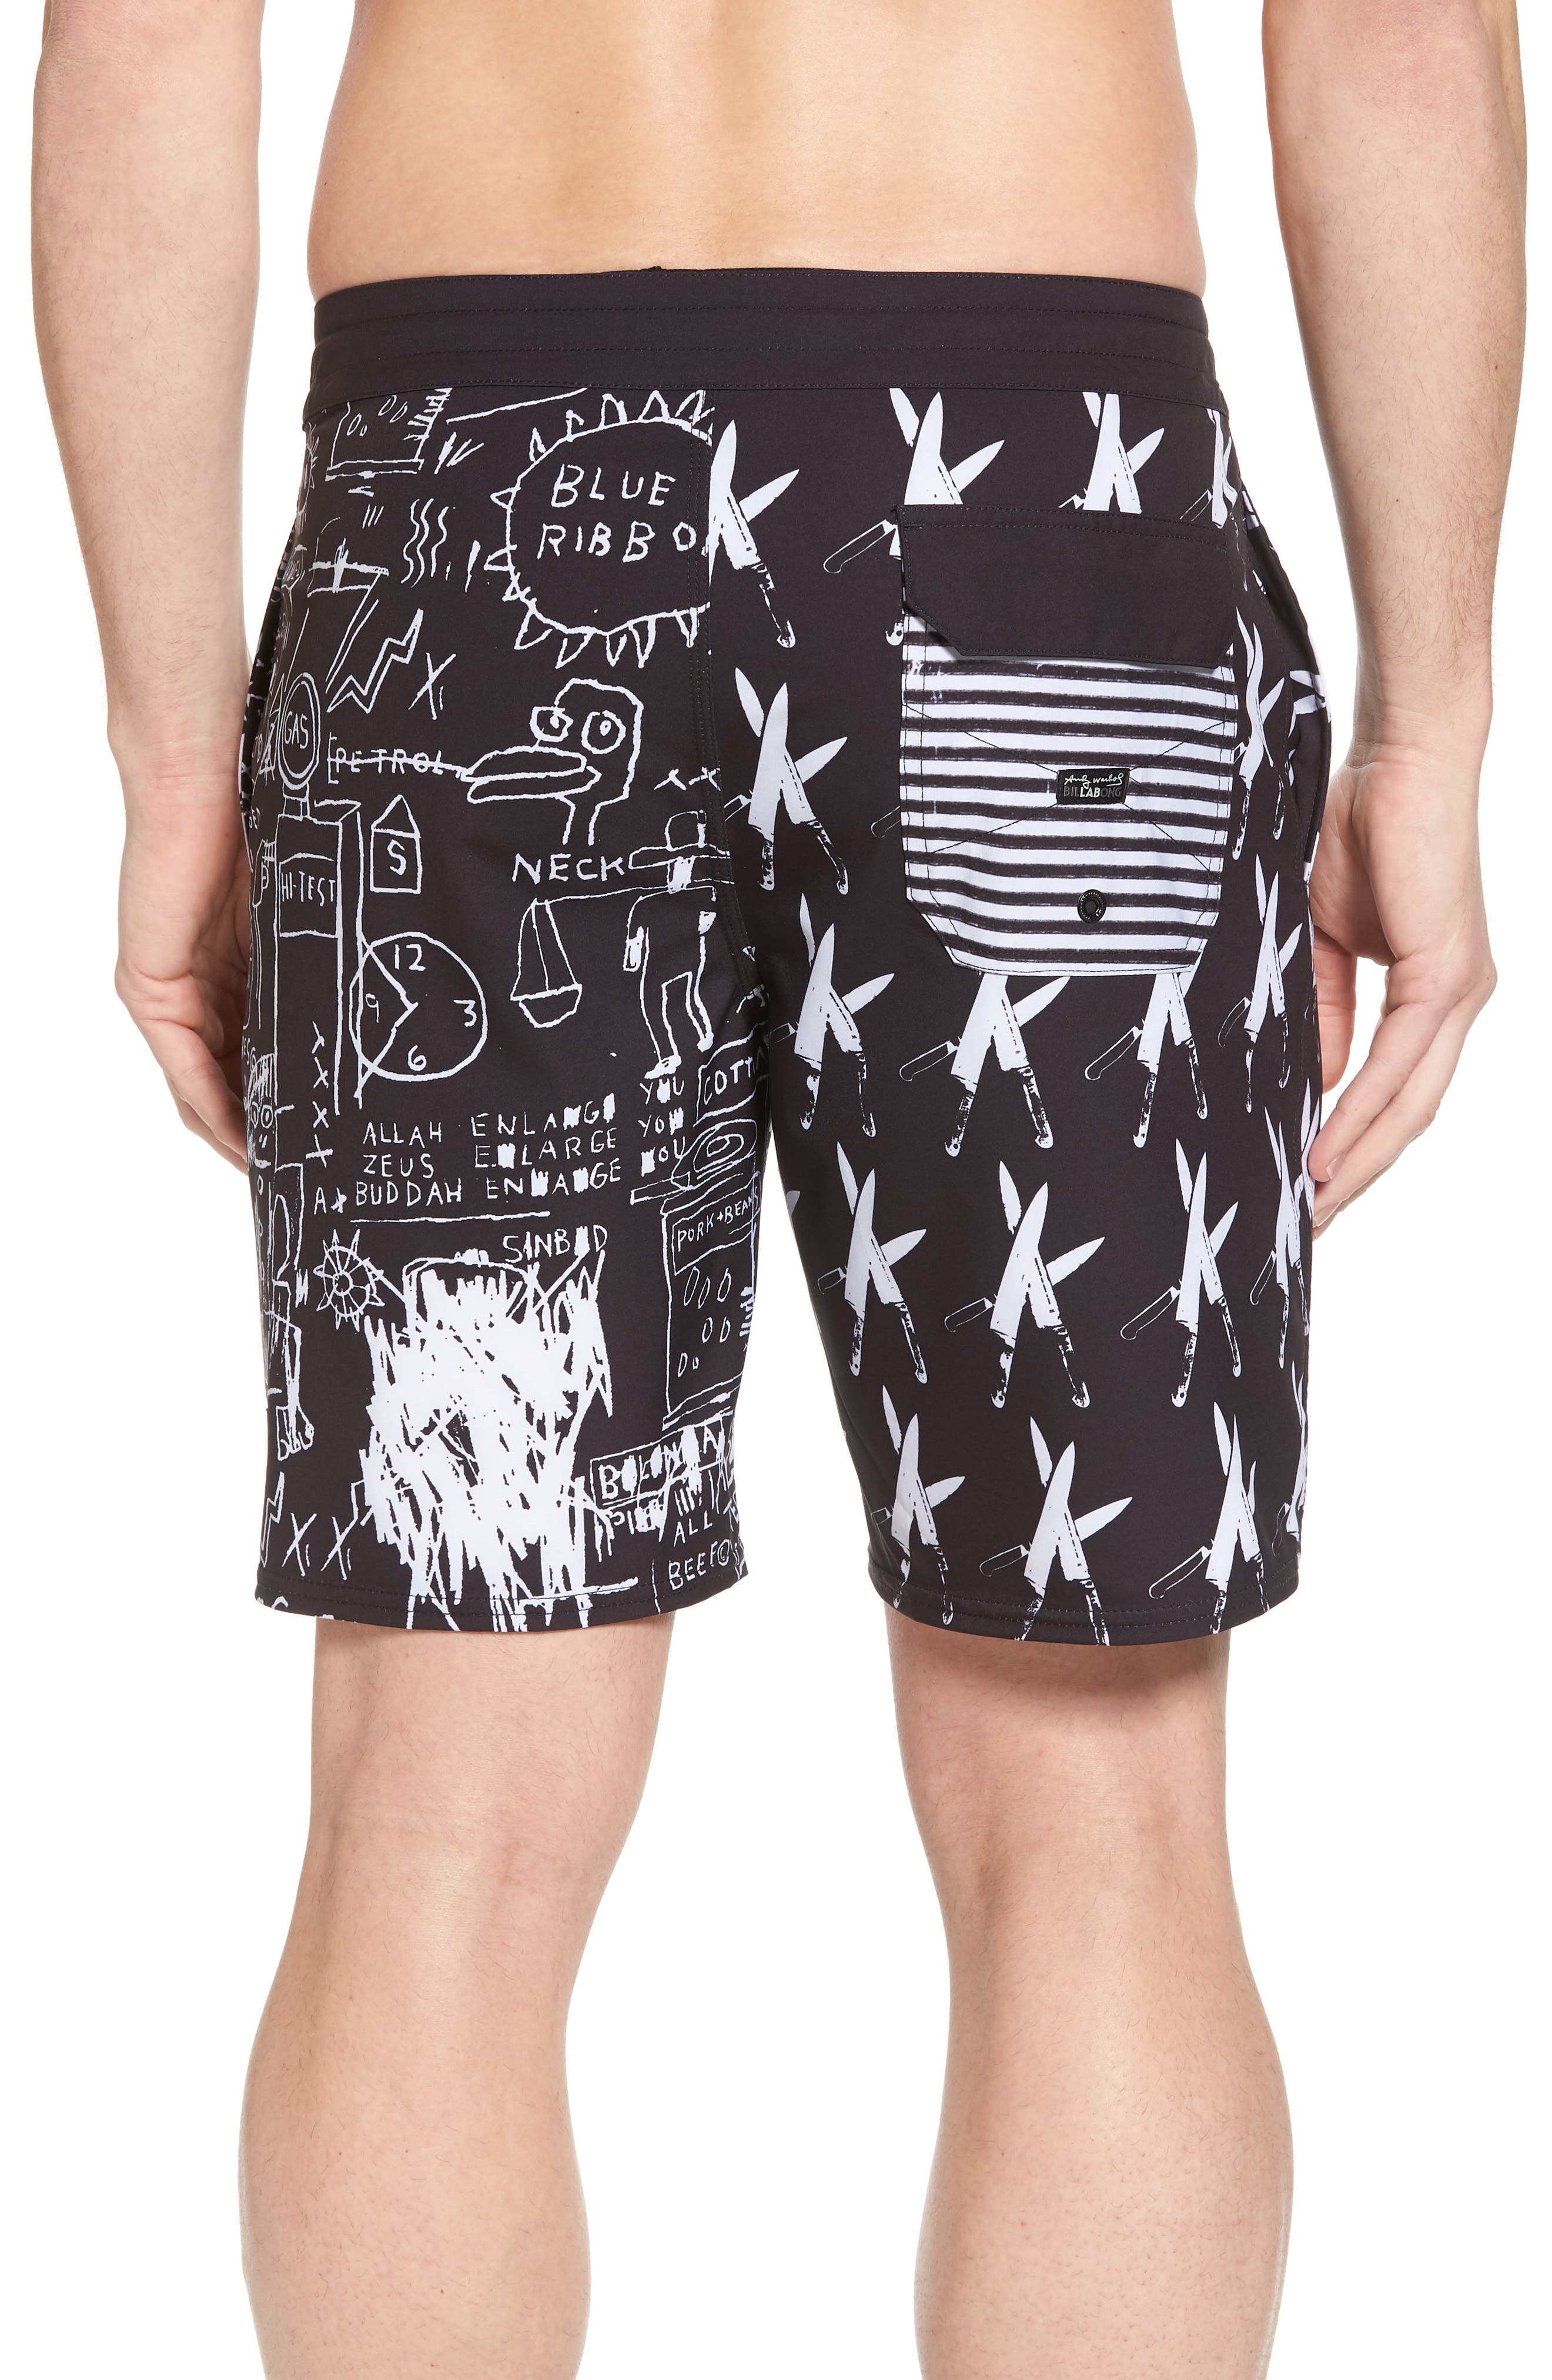 x Warhol Knives Lo Tides Board Shorts,                             Alternate thumbnail 2, color,                             Black/ White